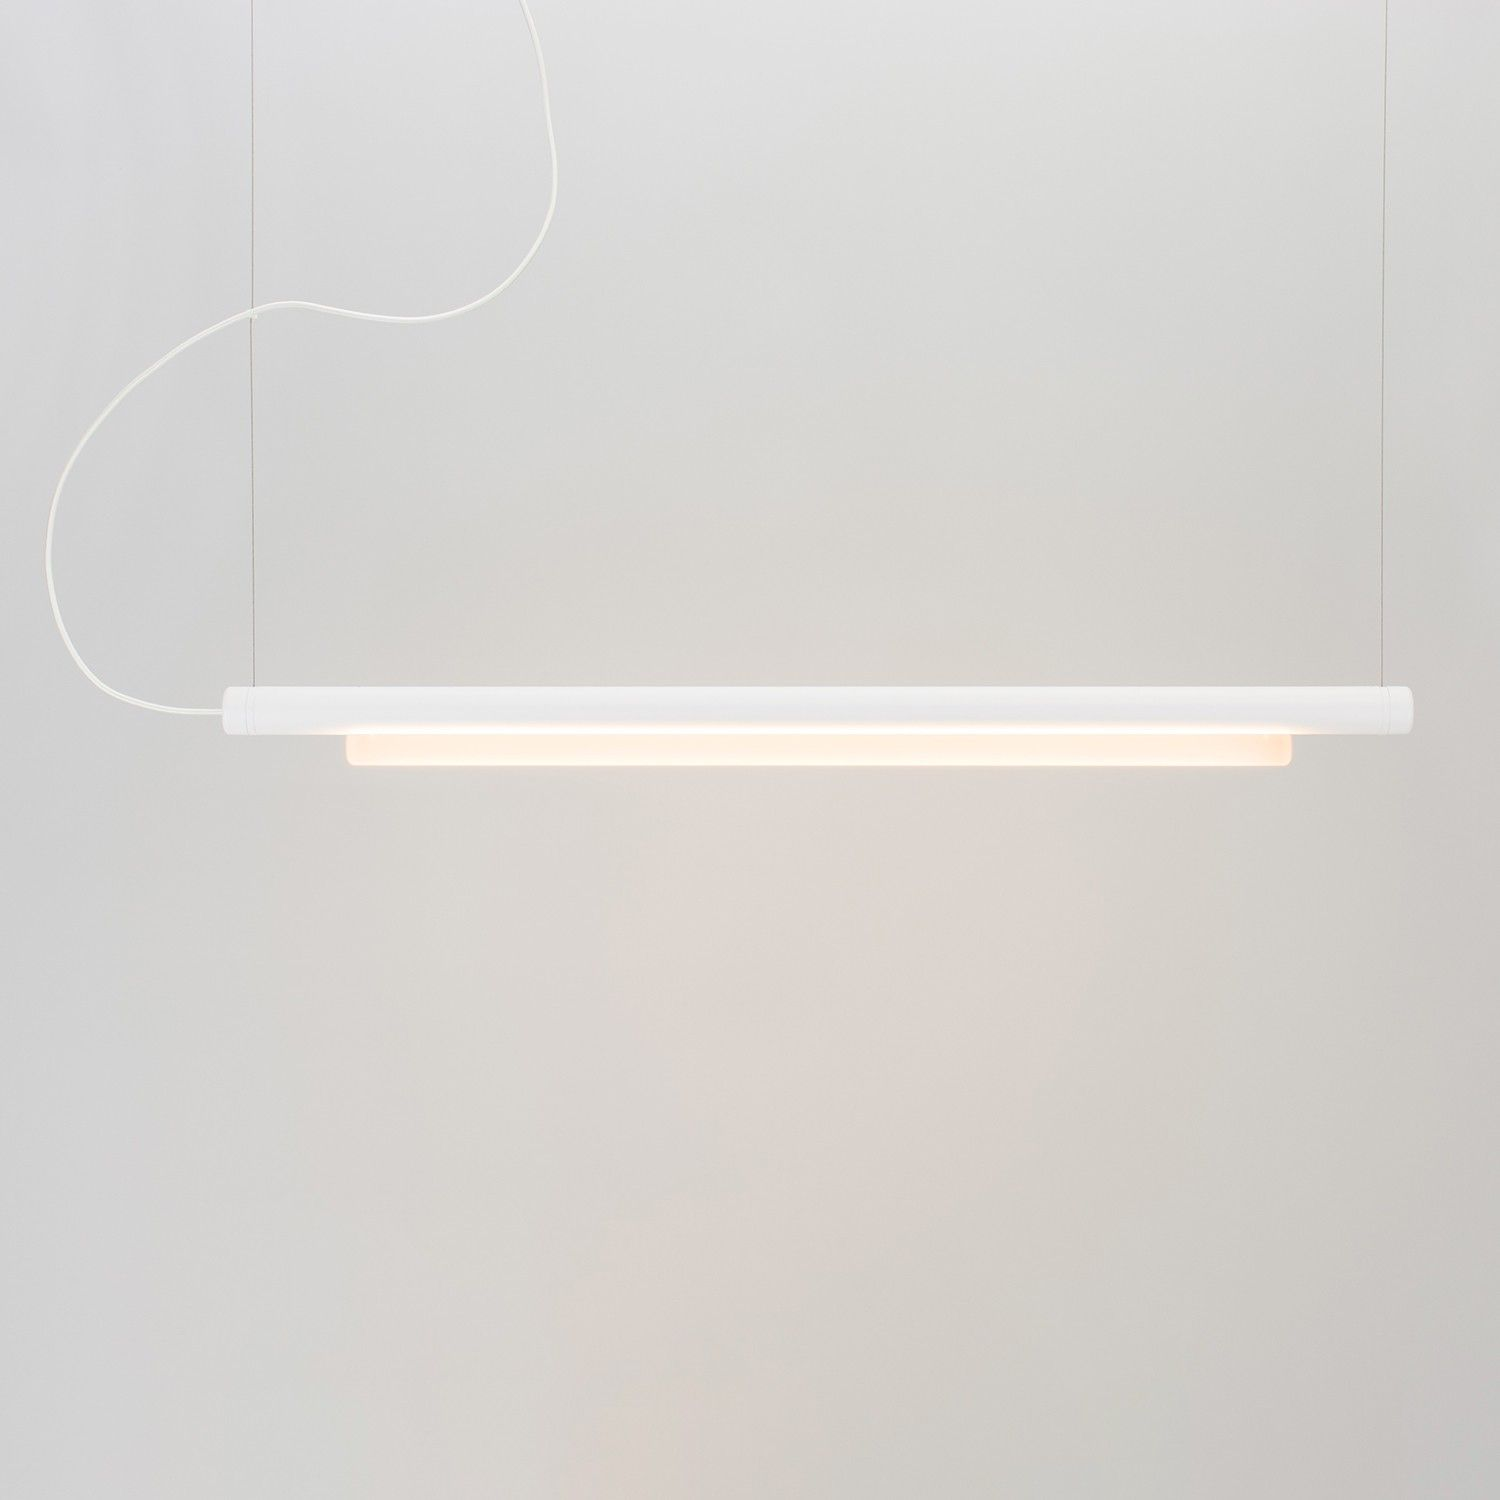 linear pendant lighting. The Pipeline 125 LED Linear Pendant Light Which Facilitates Virtually Unlimited Potential In Composition Of Its Components. Lighting N